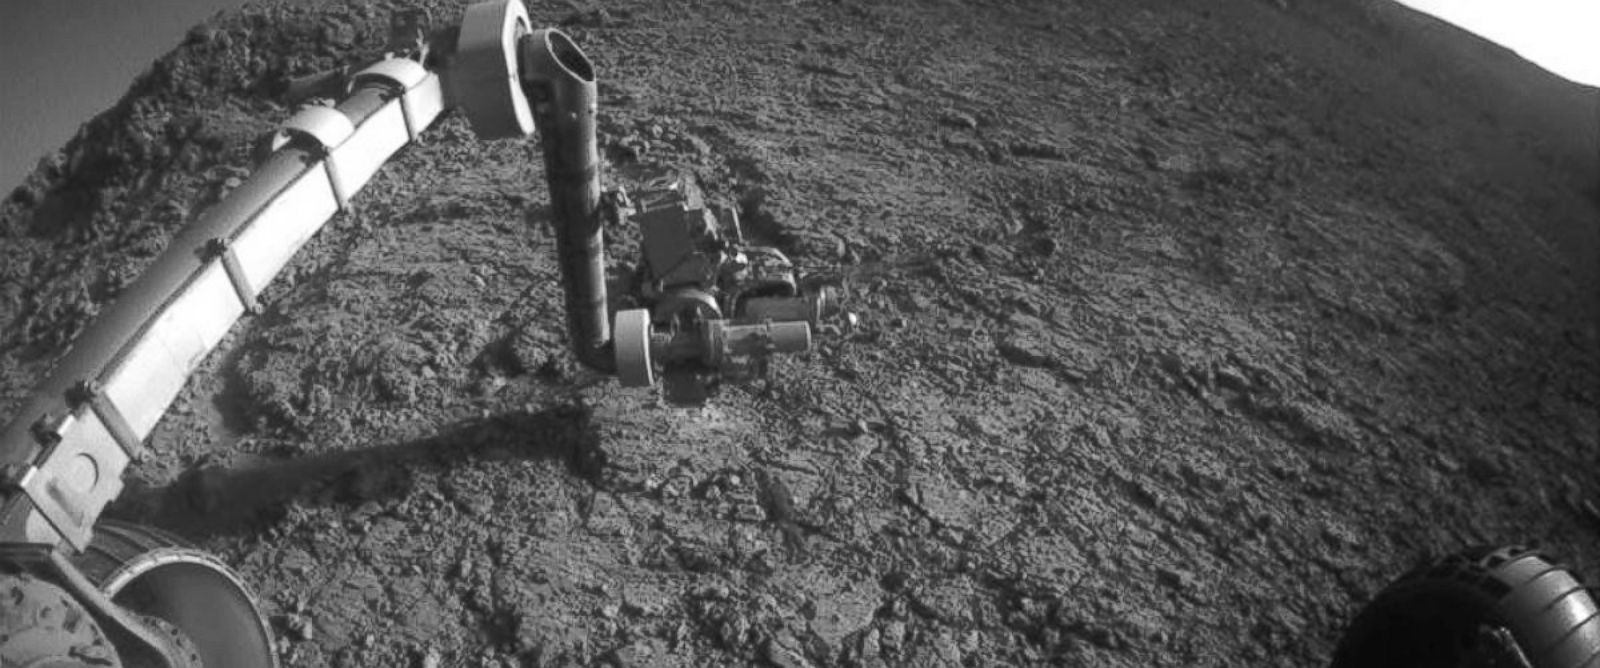 PHOTO: An image released by NASA on Jan. 25, 2016 shows the Mars Exploration Rover Opportunity at work 12 years after landing on the planet.